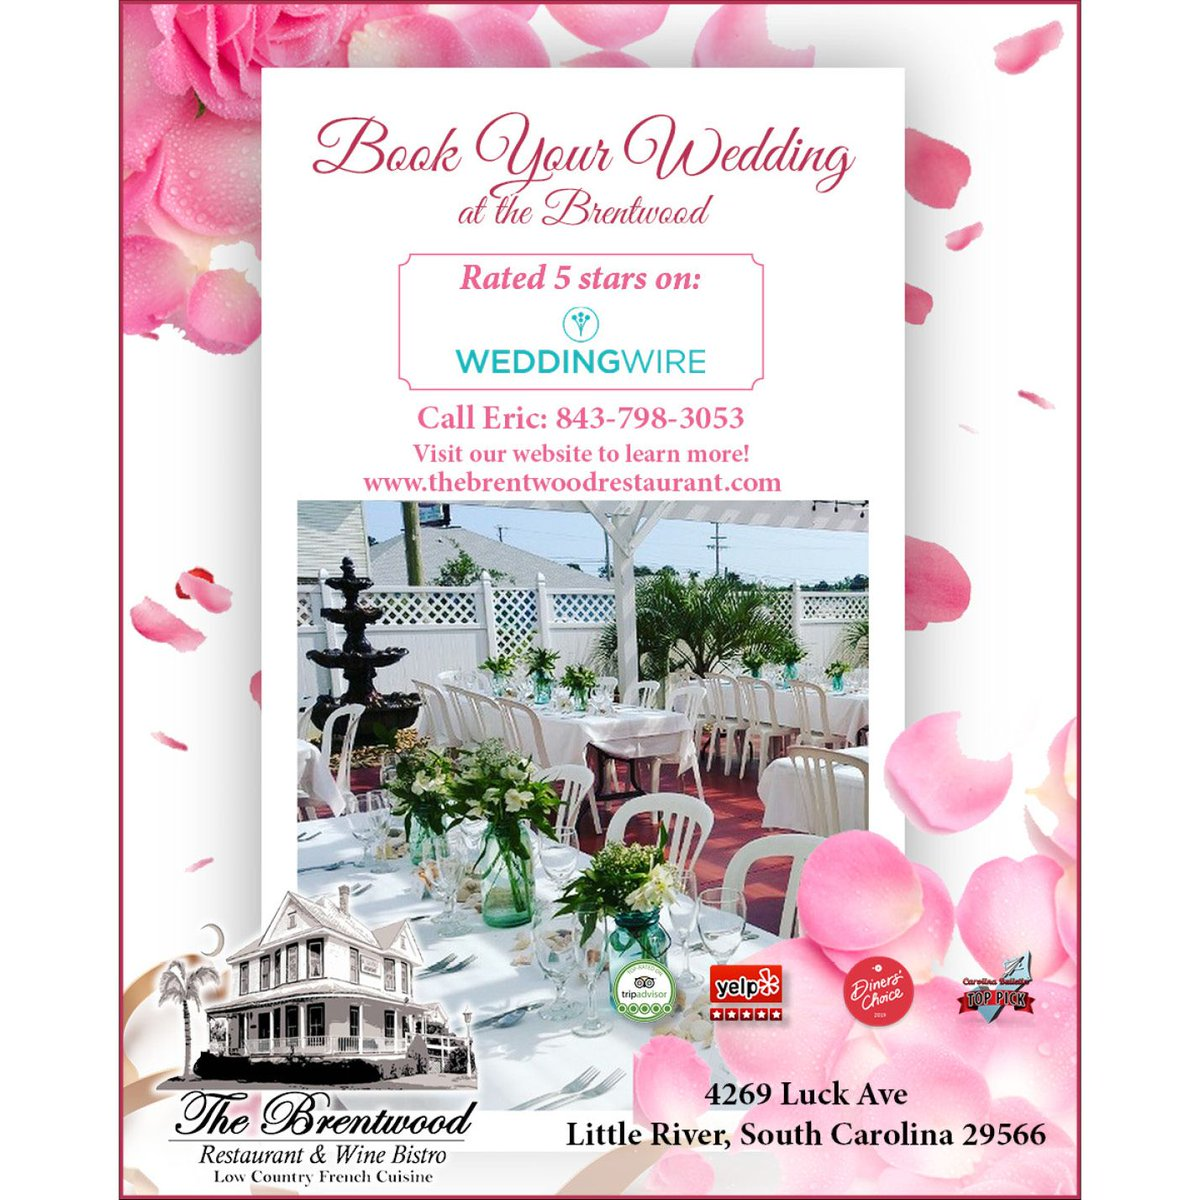 Book your #wedding at the historic @BrentWineBistro! Rated 5 stars on WeddingWire: https://buff.ly/2SAxj0J Call Eric: 843-798-3053 4269 Luck Ave, Little River, SC 29566 Visit the website to learn more: https://buff.ly/2K9NVVR  #weddingplanning #weddingvenue #grandstrand #SCpic.twitter.com/uzAwgvDtGB